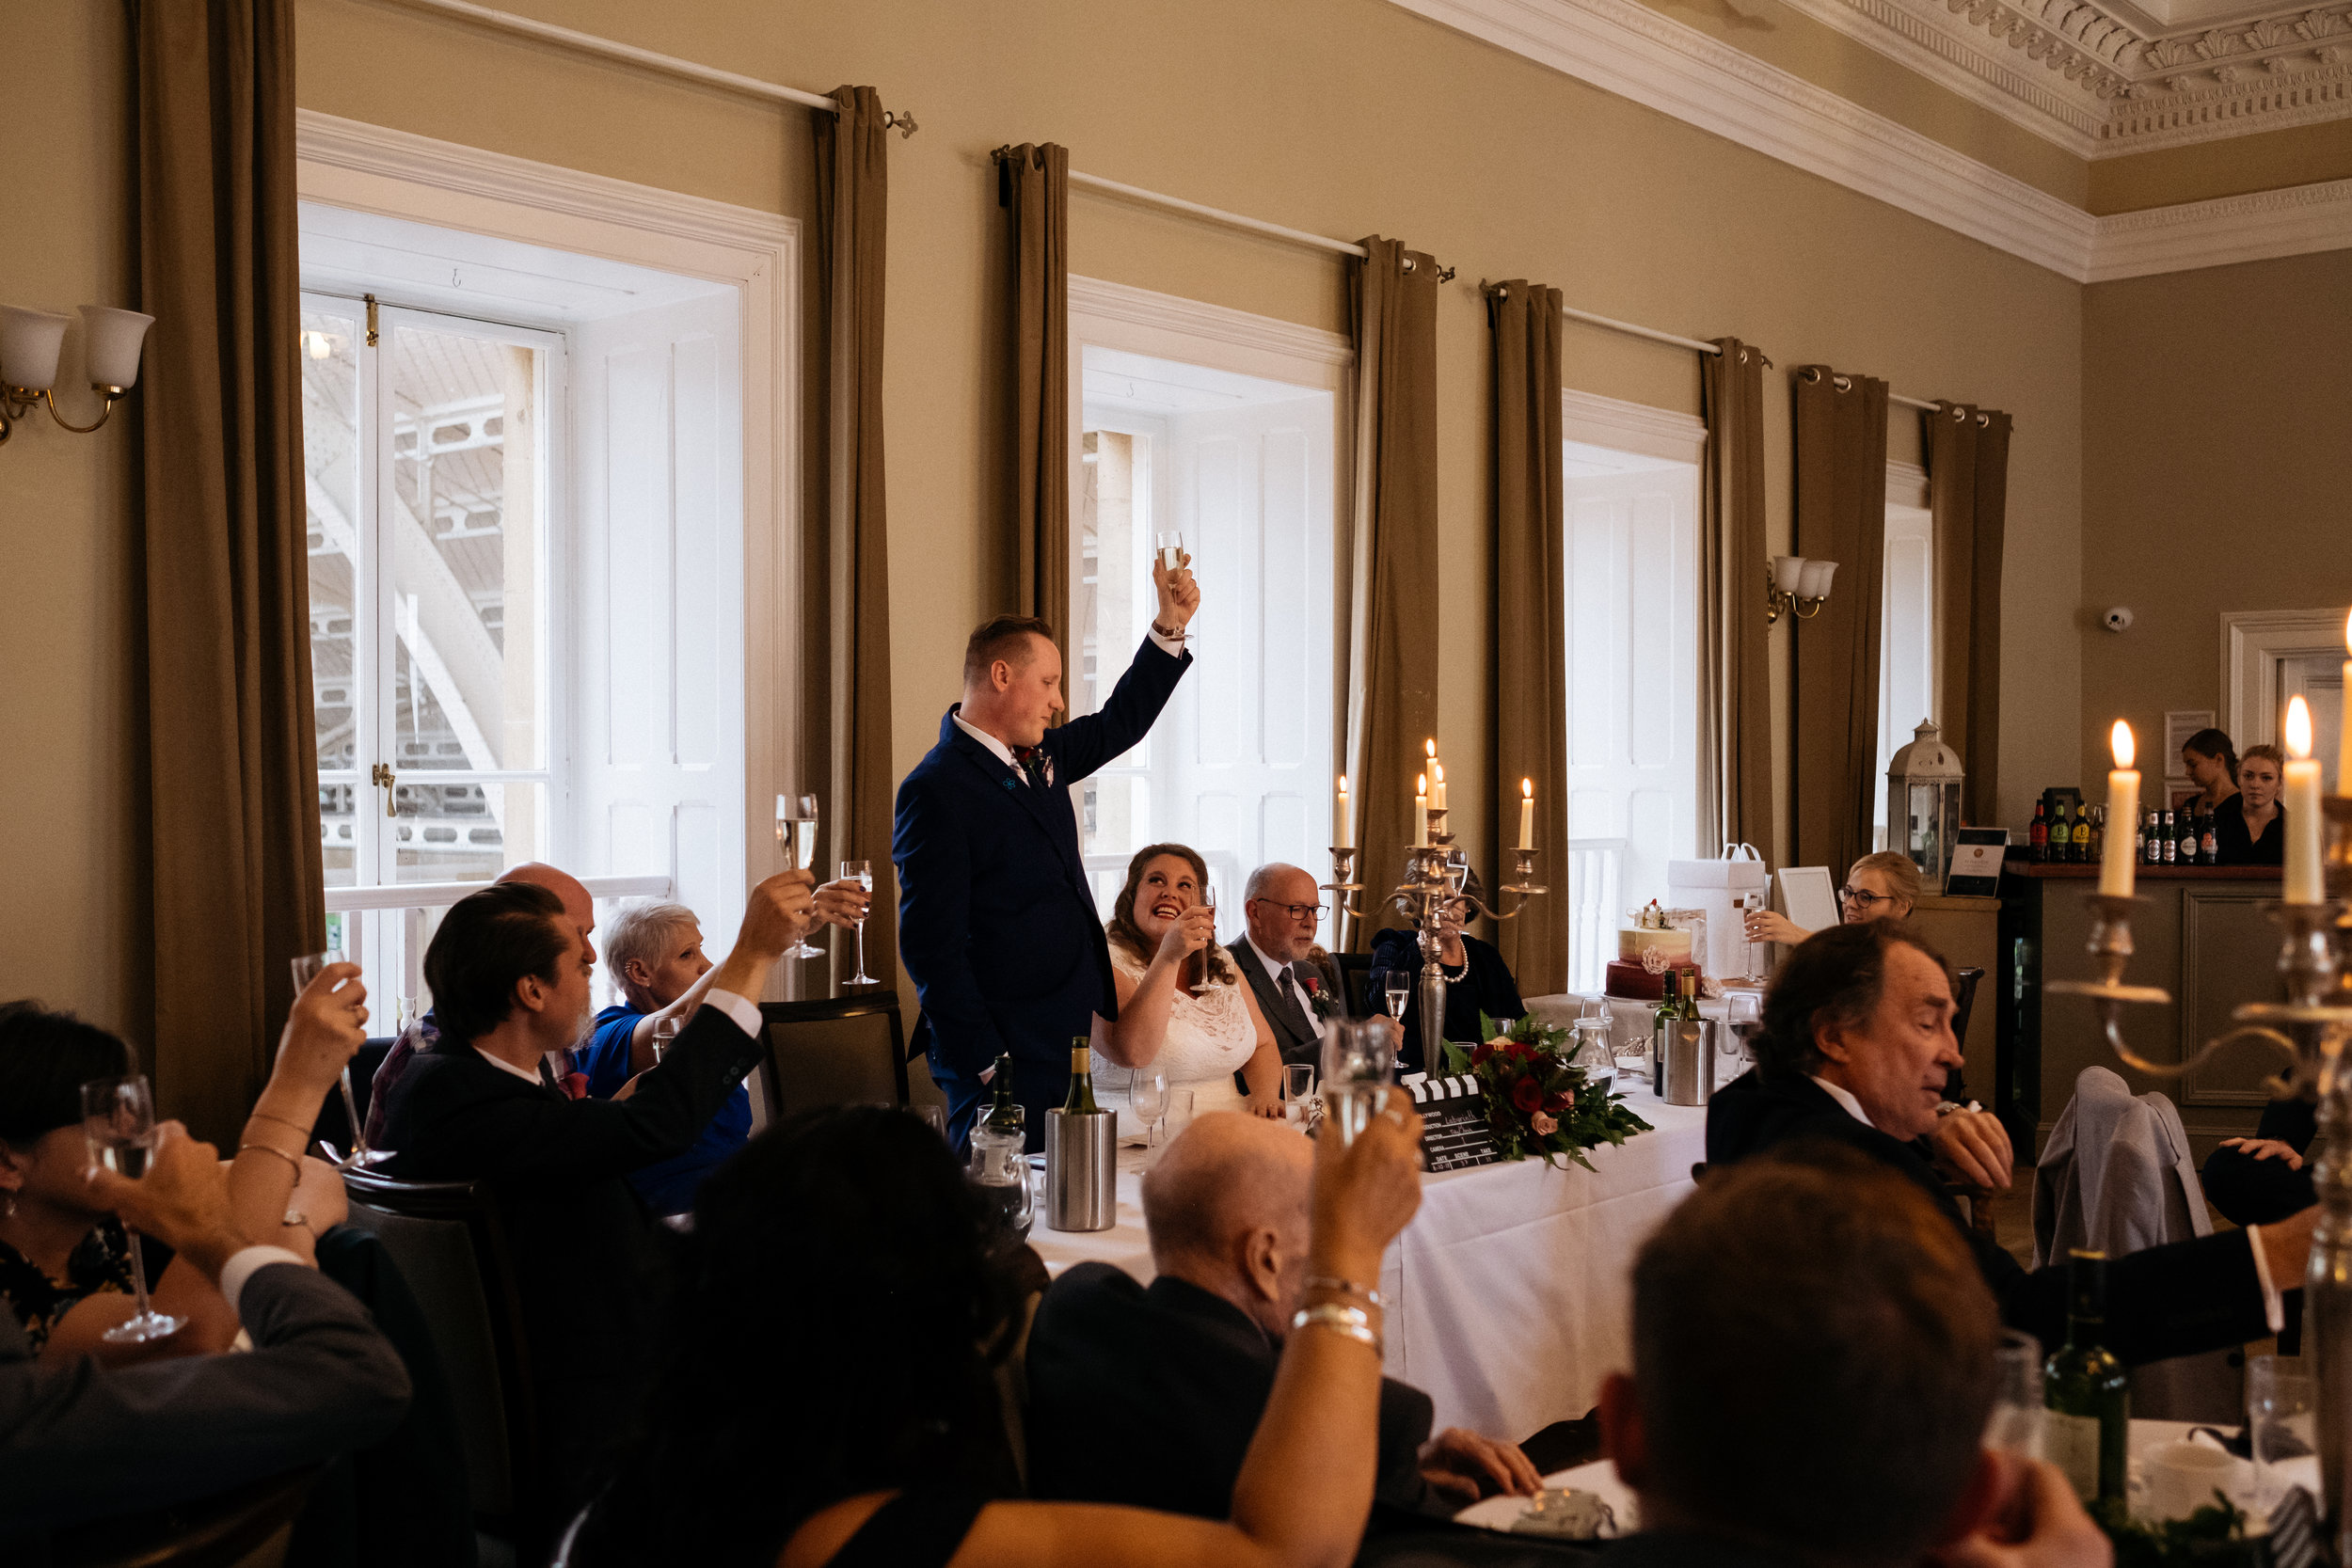 Groom raises glass in toast to all wedding guests